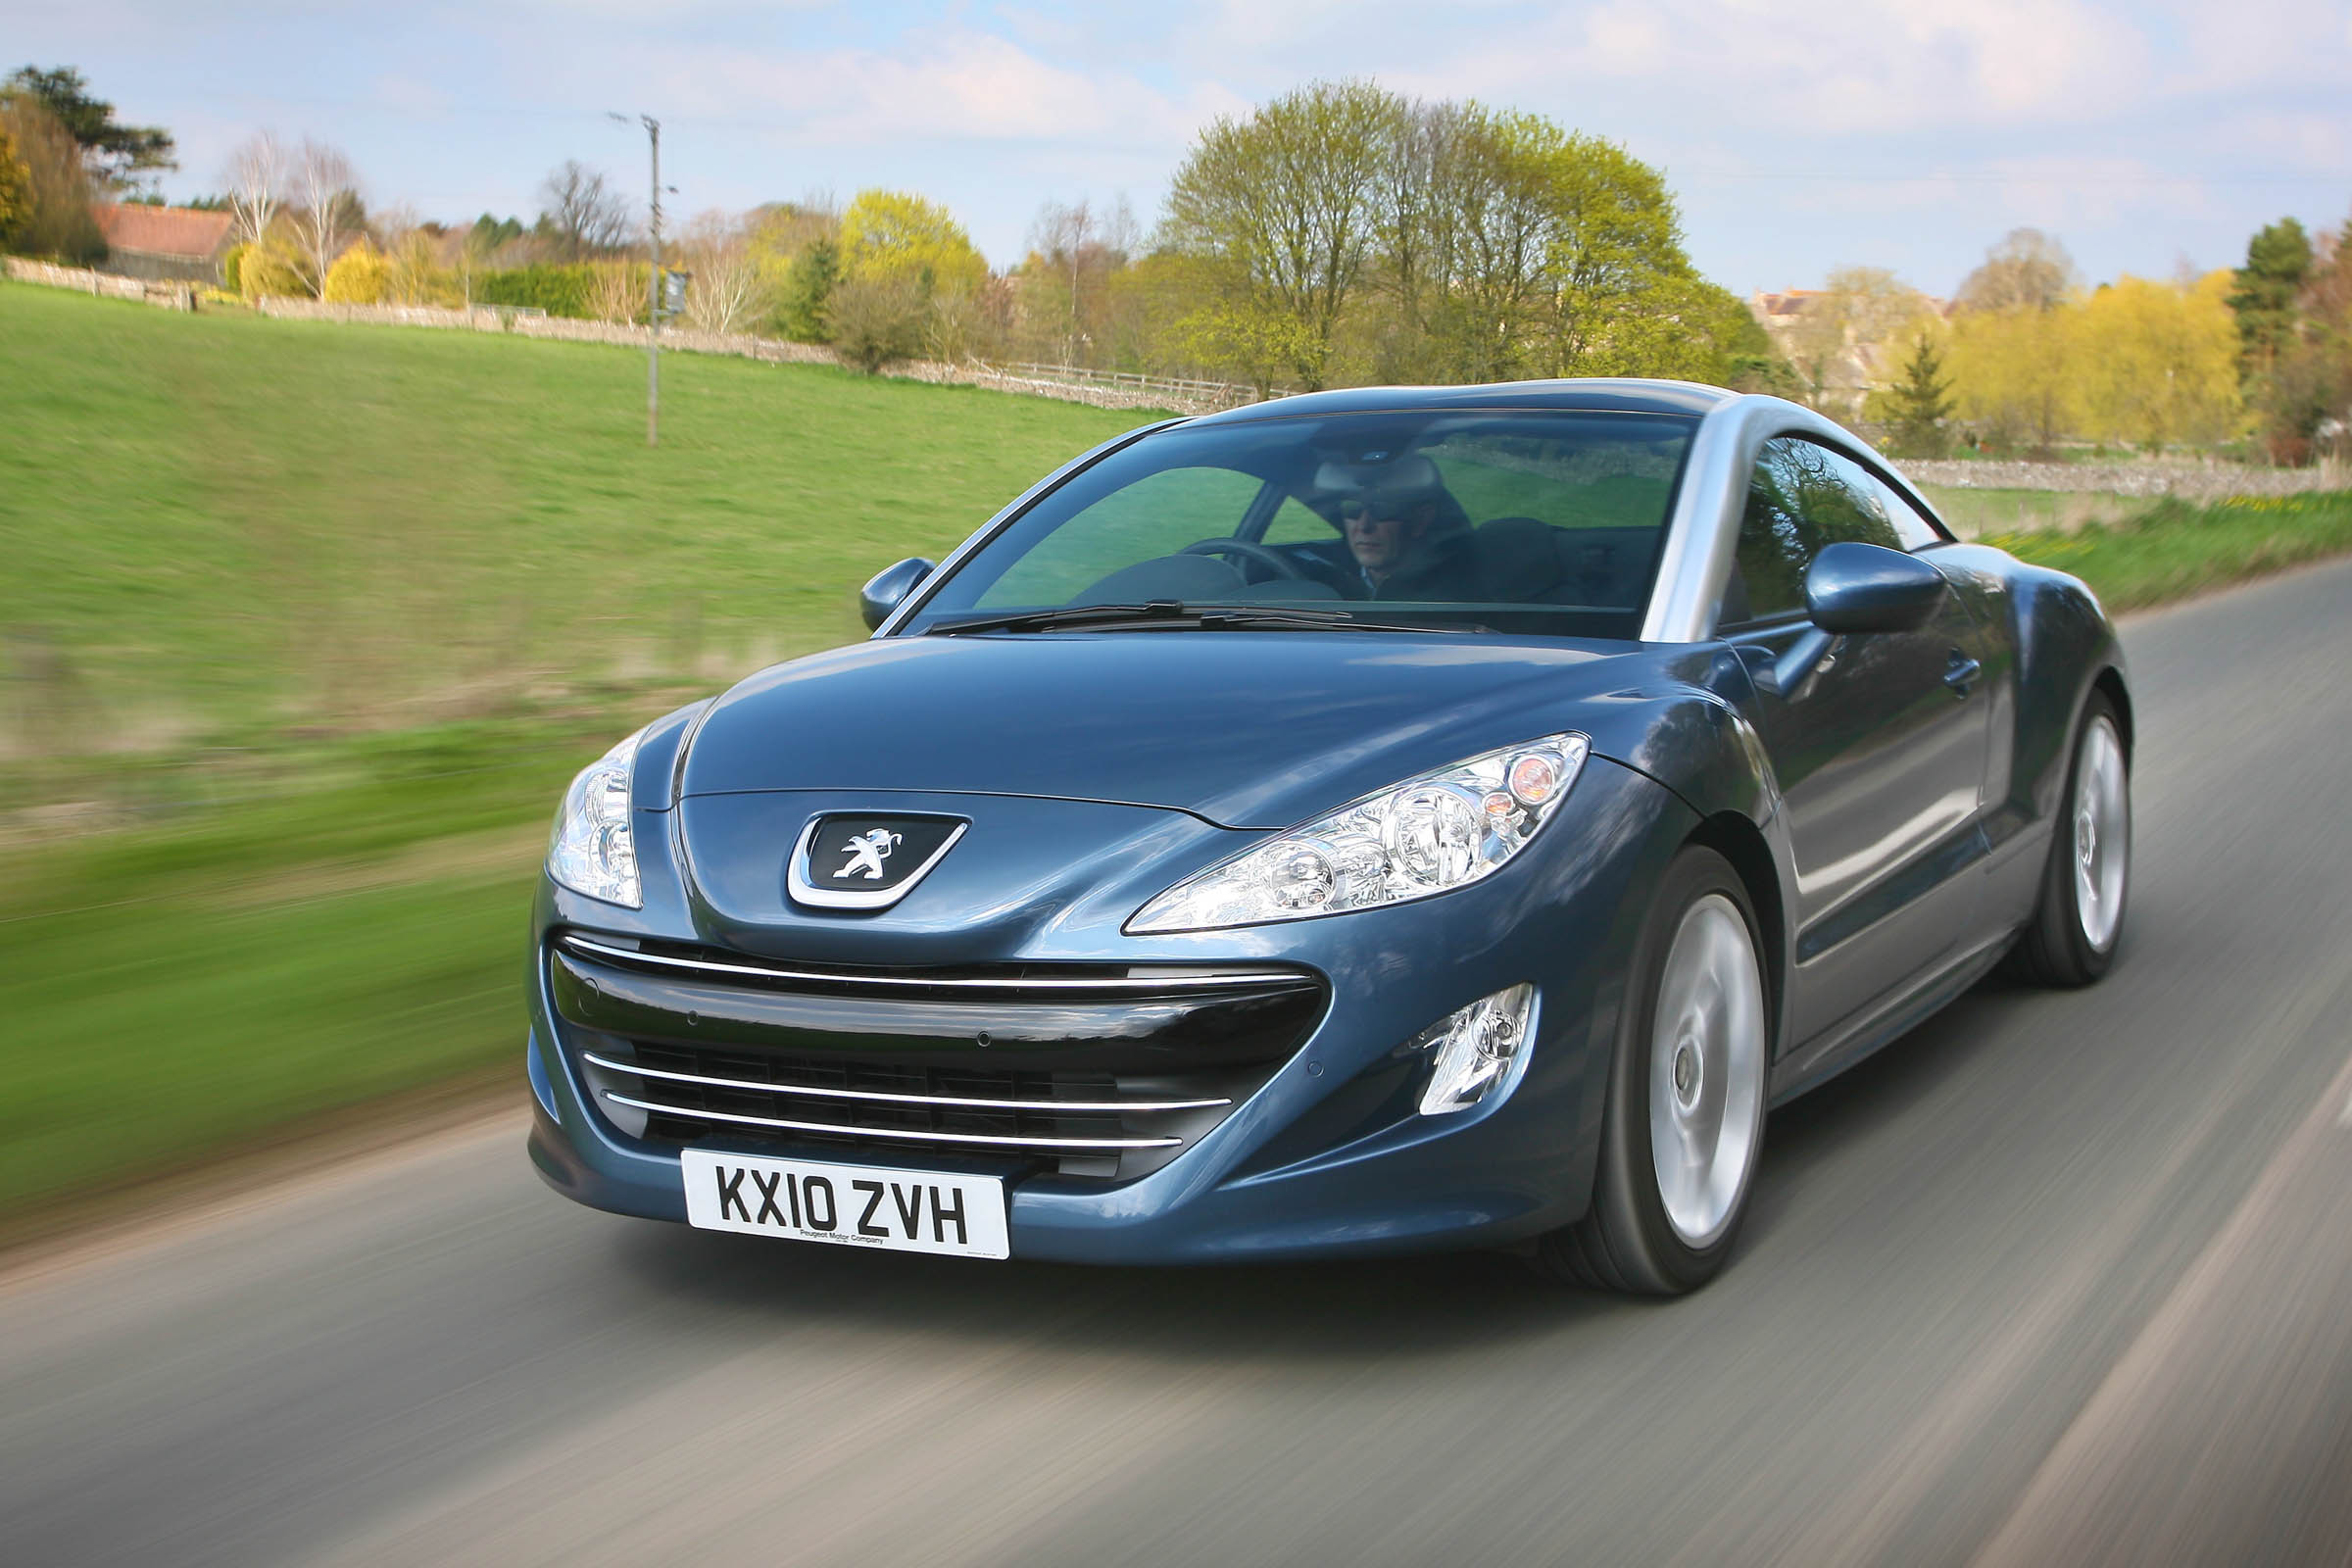 Cheap Fun Cars Our Used Sporty Car Picks From 1 000 To 10 000 Carbuyer